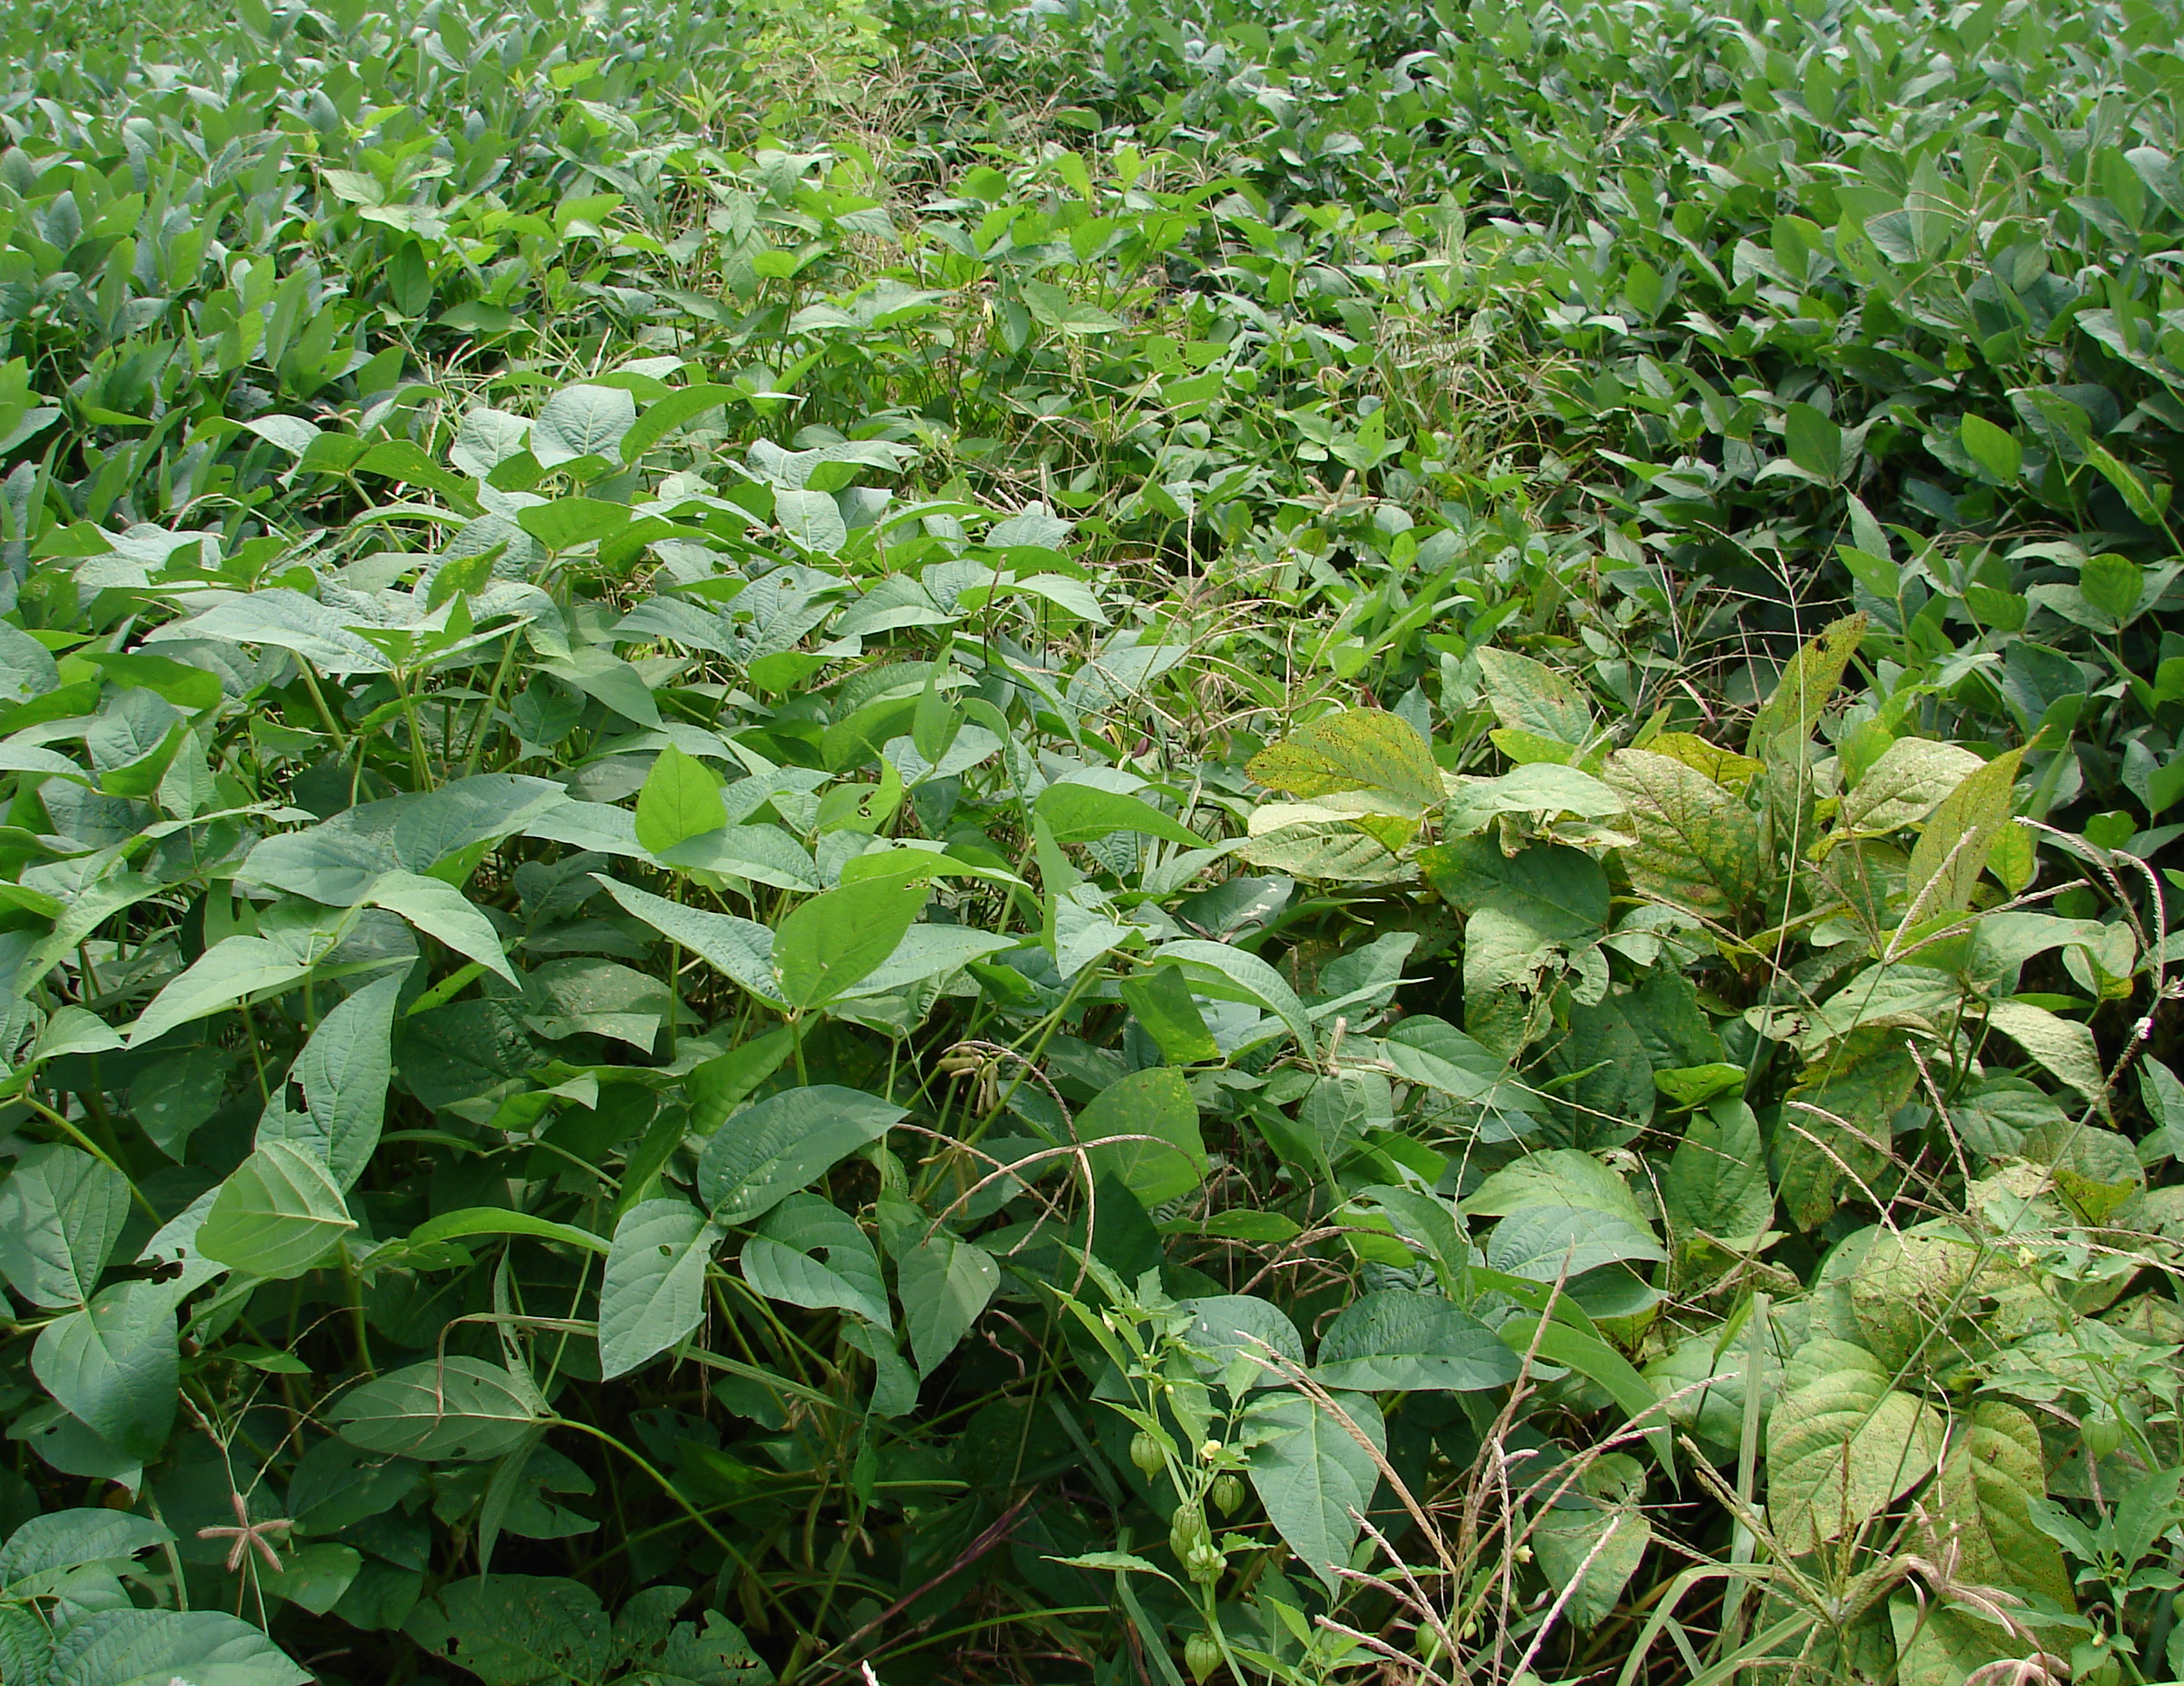 Soybean plant canopy with bacterial pustule.